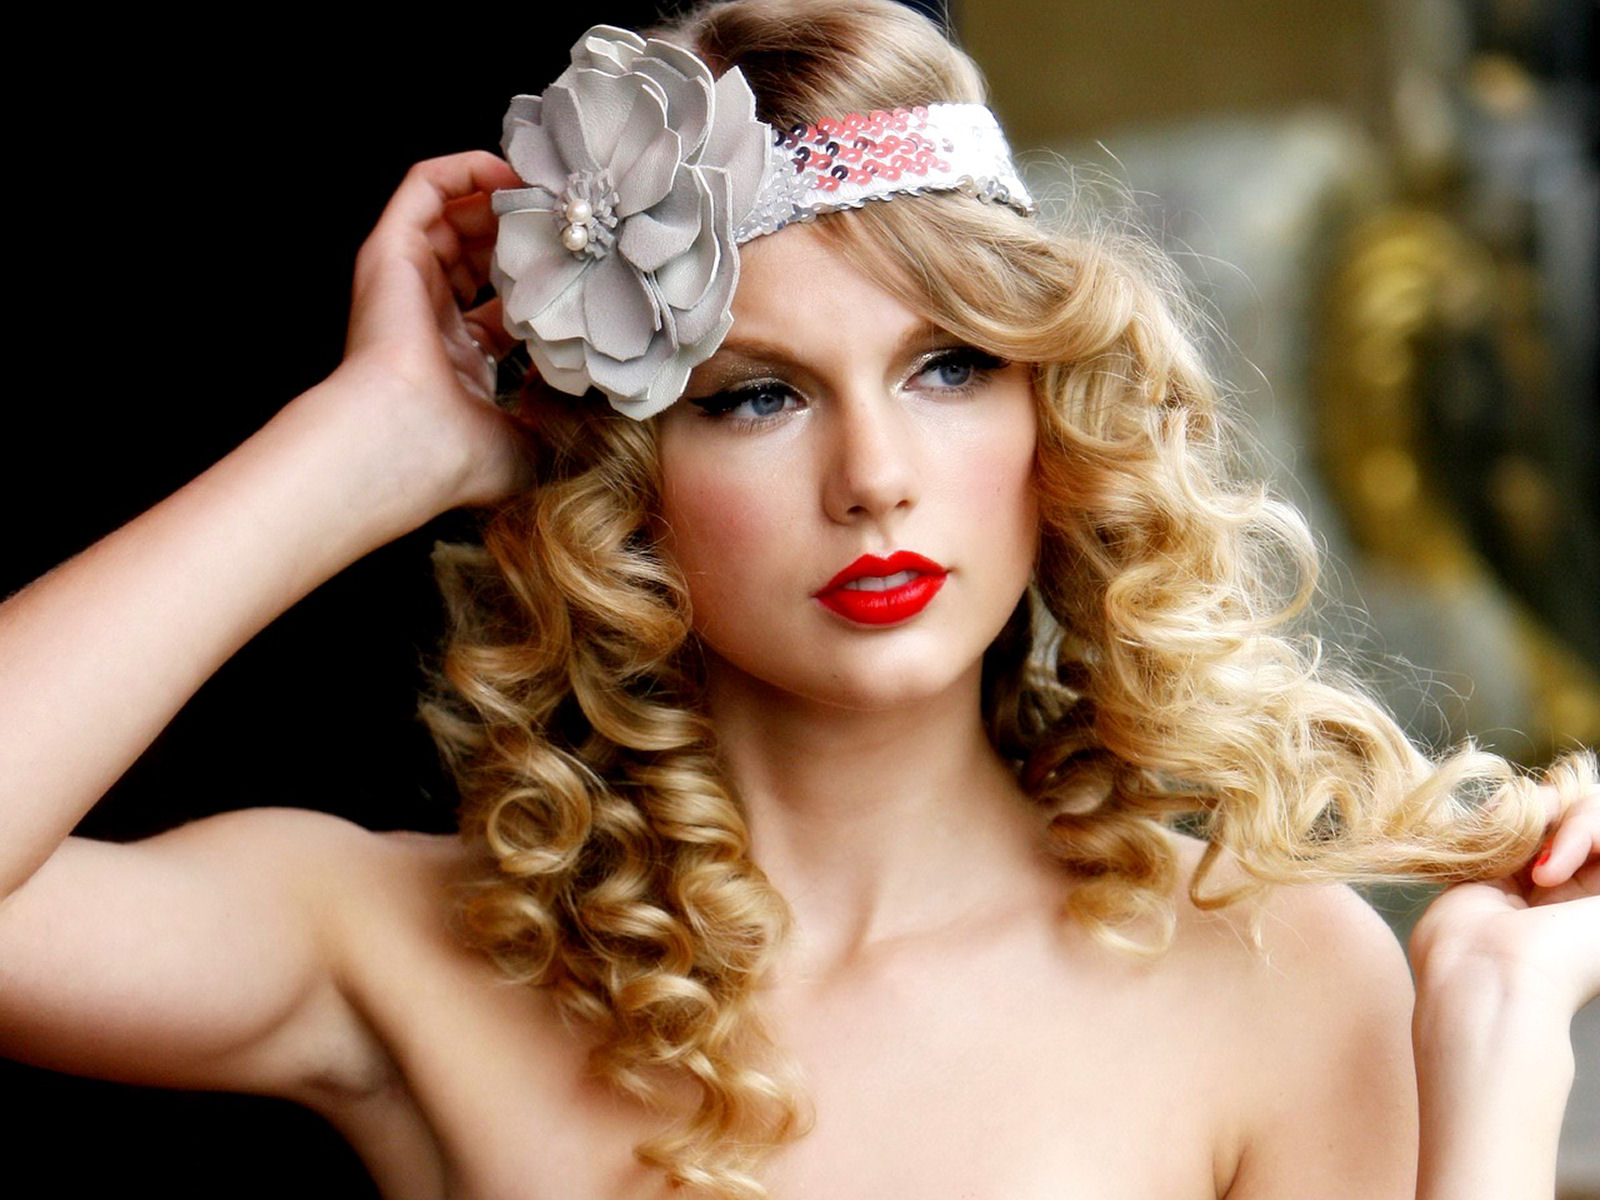 http://4.bp.blogspot.com/-BZAKJVE2V_Q/TsoTgatRLnI/AAAAAAAAAoY/XxcI3XJfn3k/s1600/The-best-top-desktop-taylor-swift-wallpapers-taylor-swift-wallpaper-taylor-swift-background-hd-6.jpg